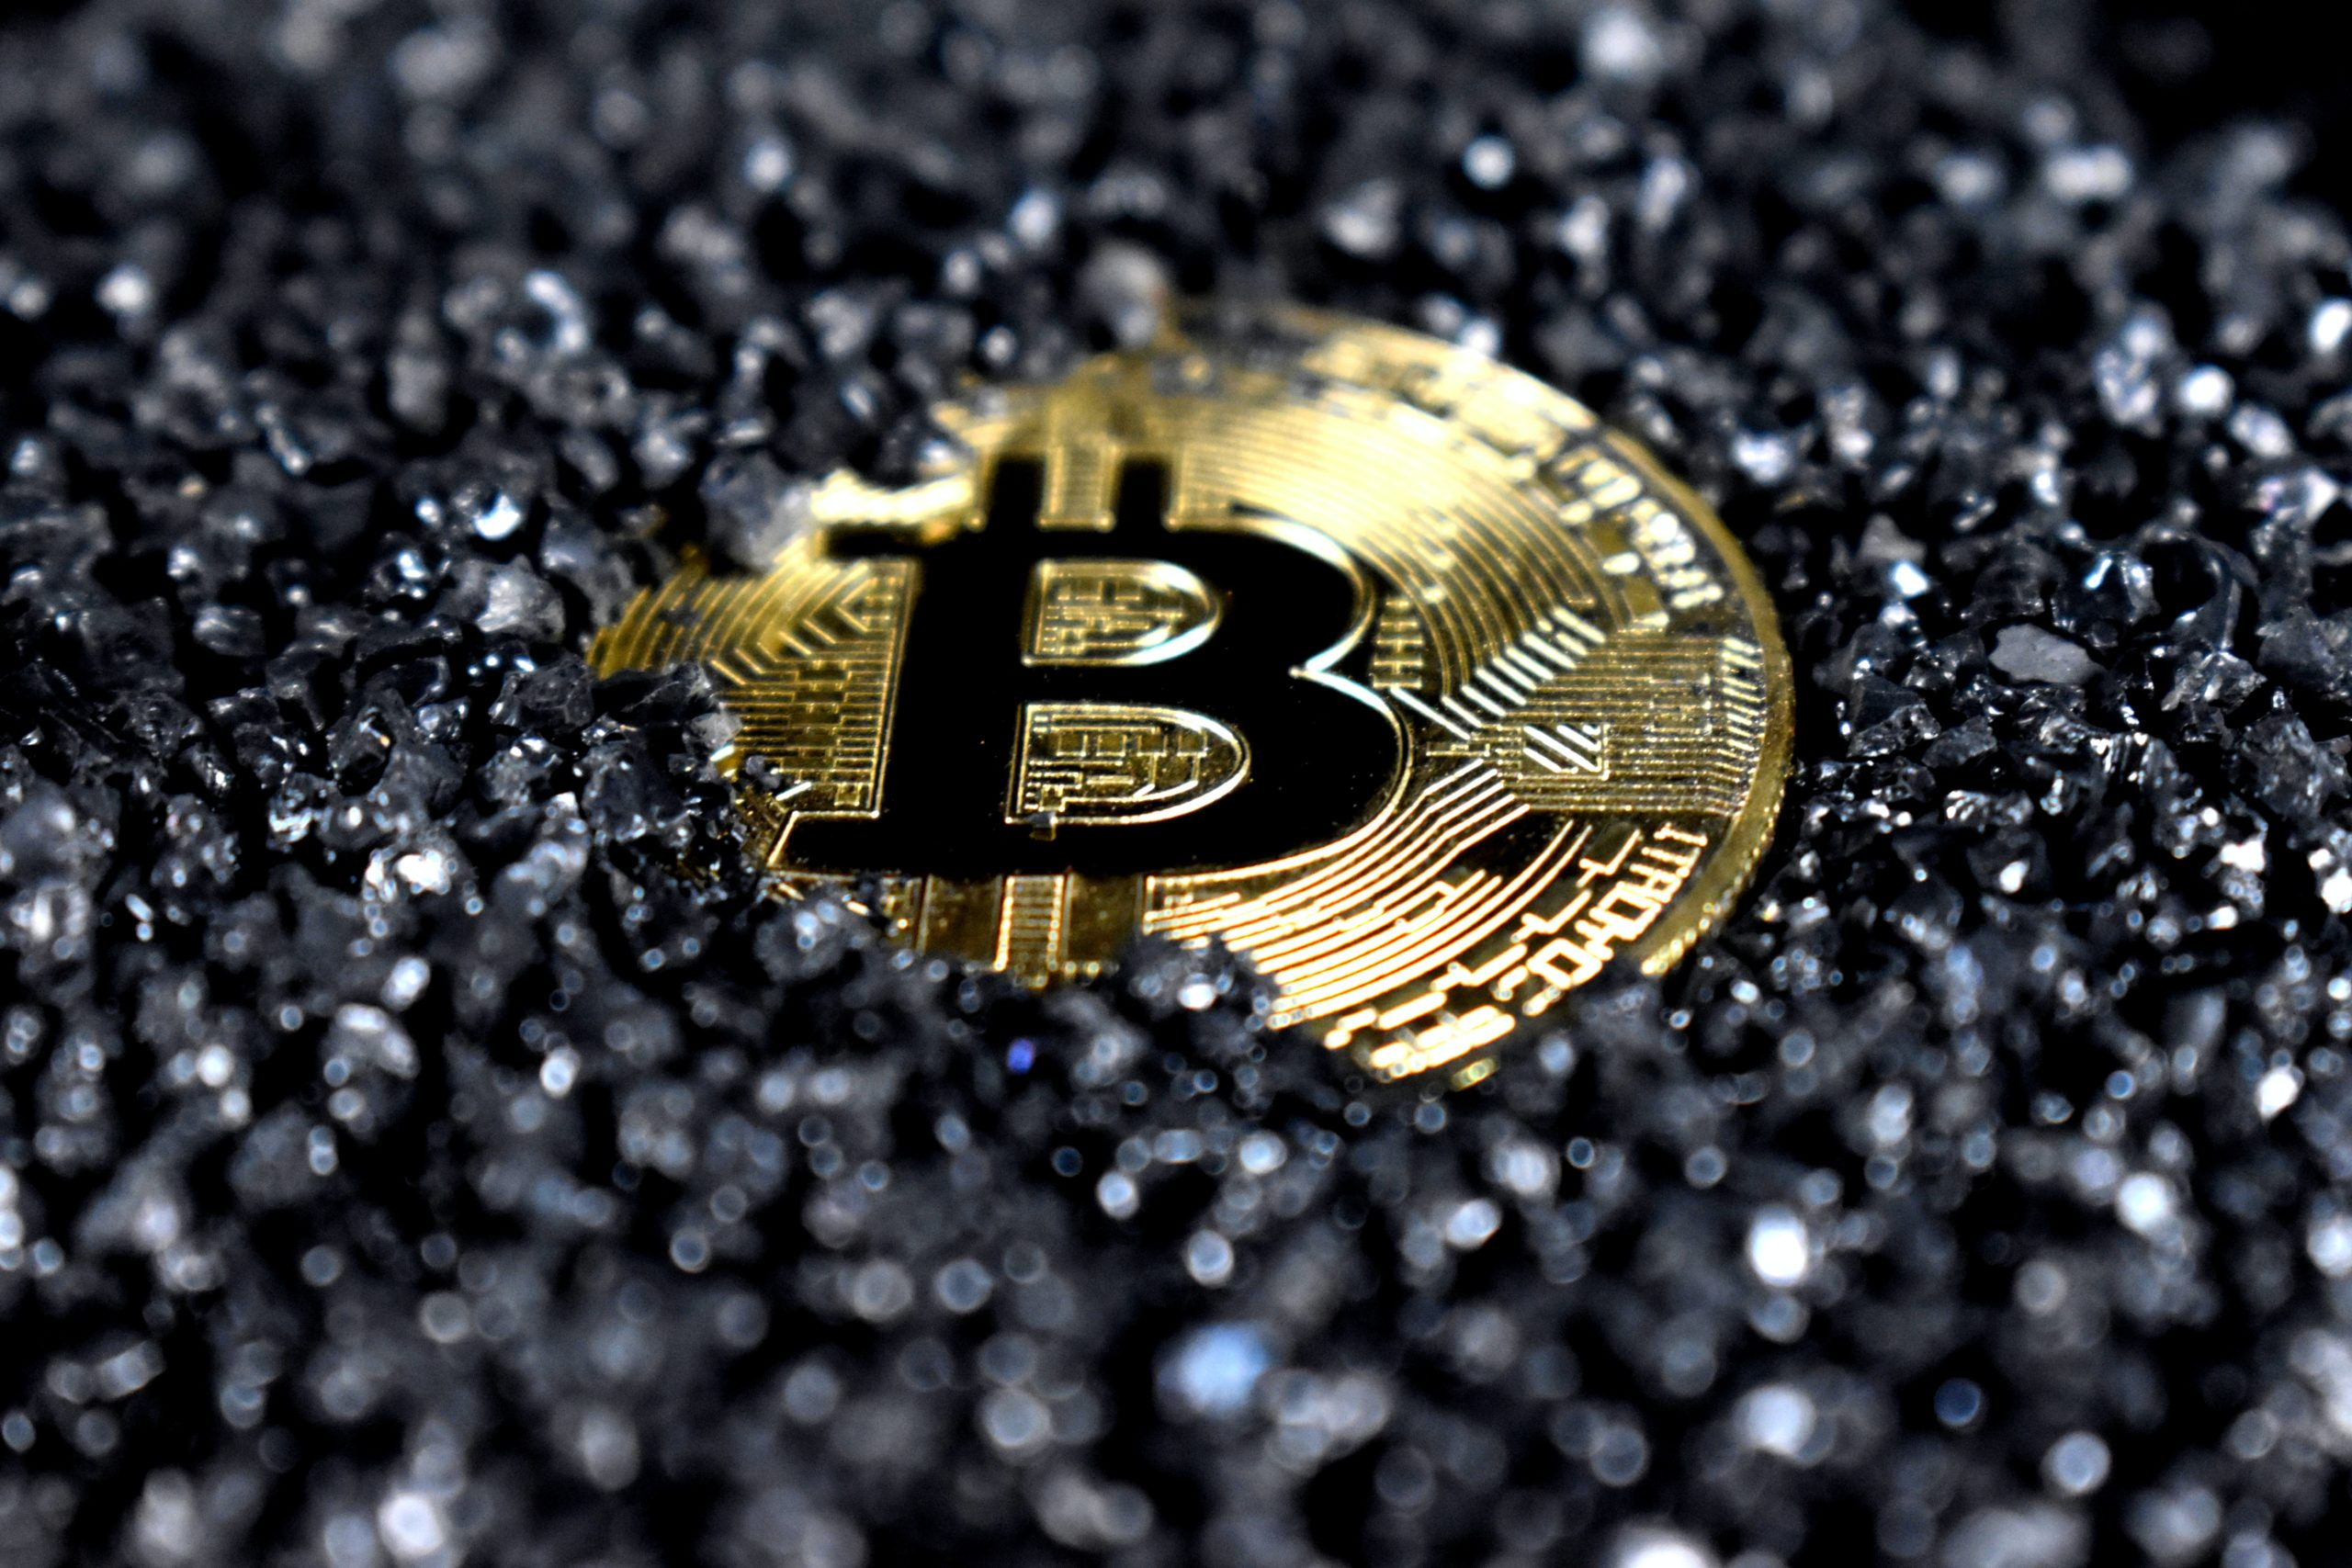 Bitcoin; an emerging cryptocurrency